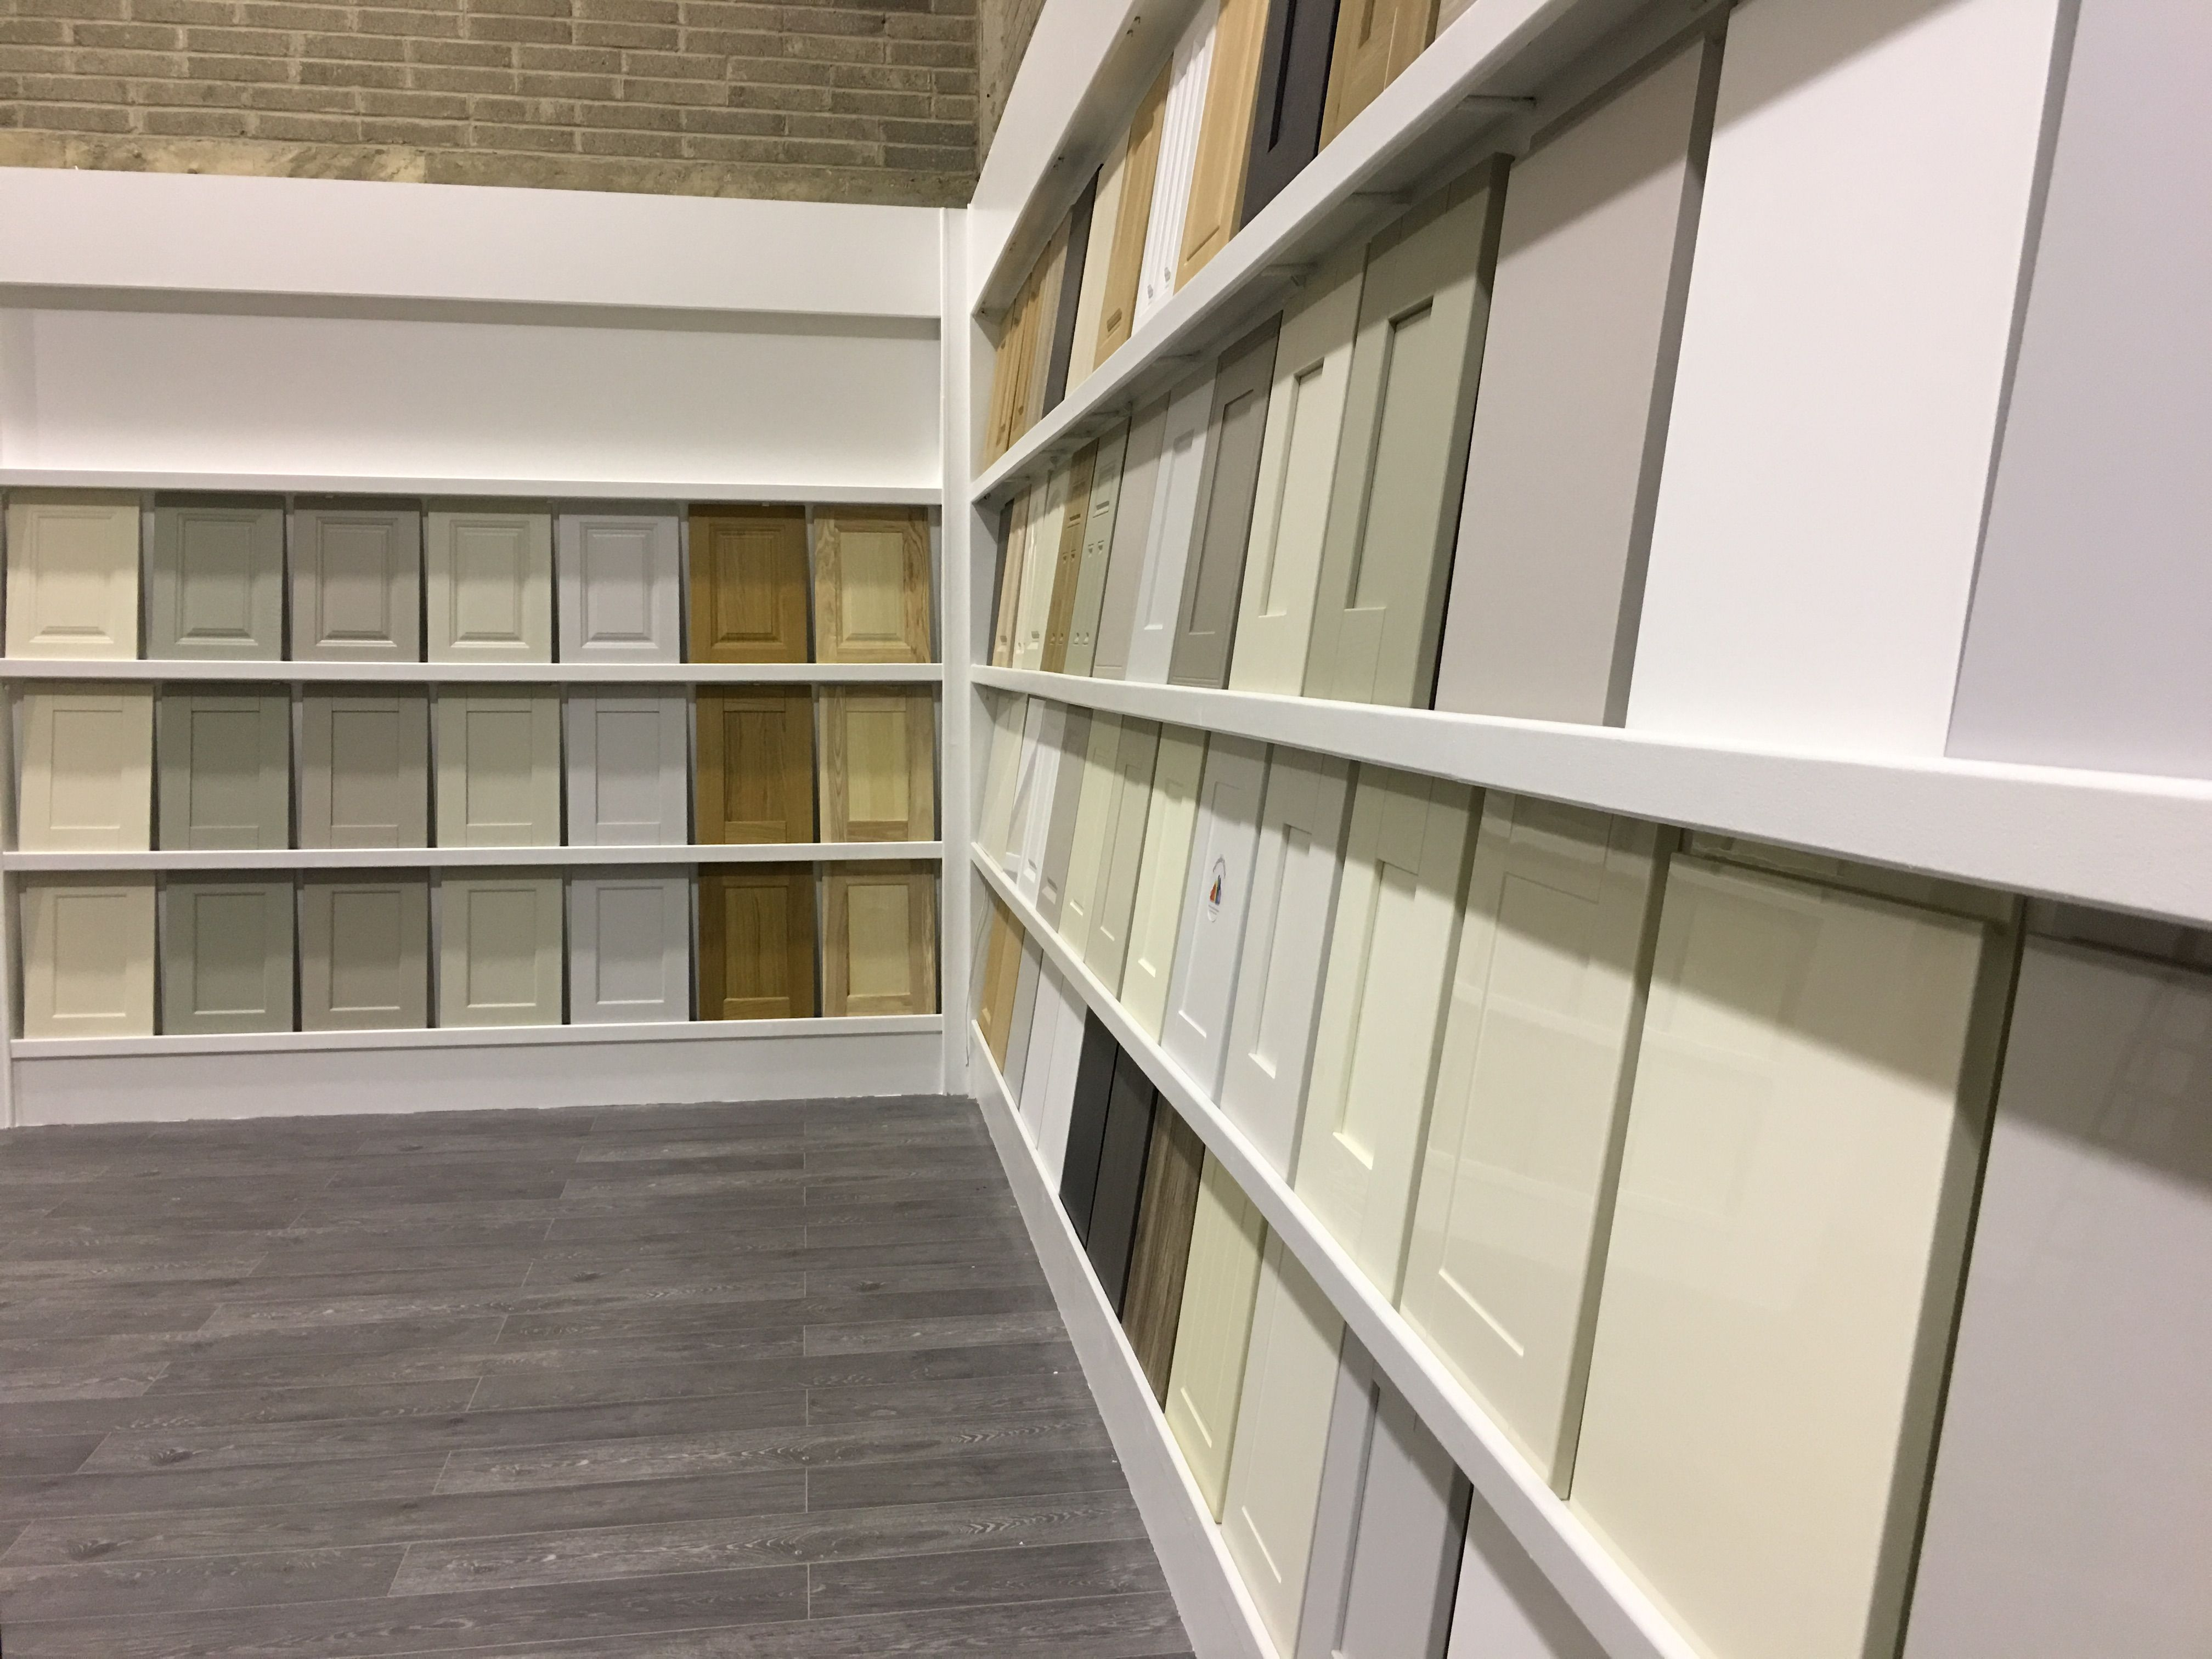 The New Kitchen Door Collection On Display In The Showroom The Ideal Starting Place For A Kitchen Kitchen Design Showrooms New Kitchen Doors Kitchen Showroom